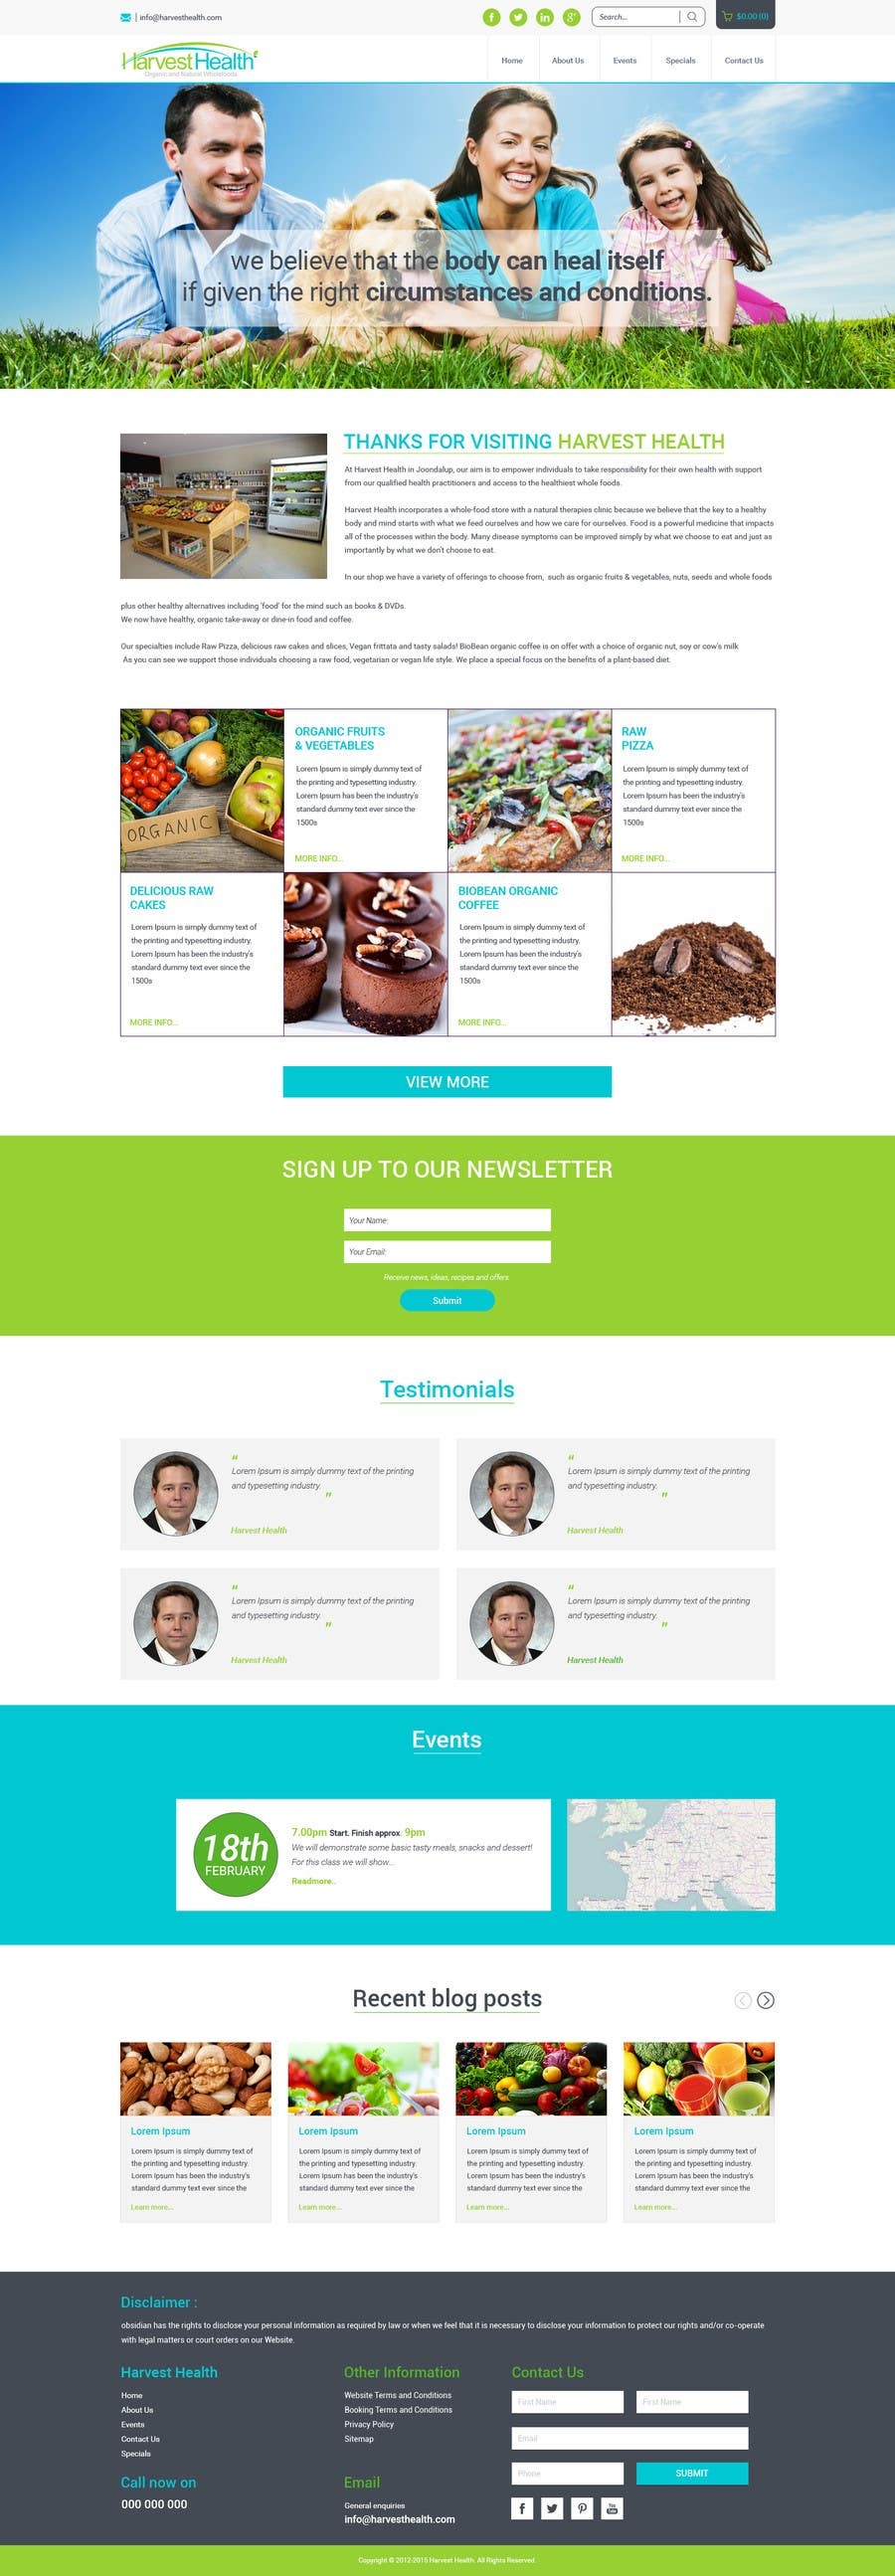 Konkurrenceindlæg #                                        7                                      for                                         Design a Website Mockup for A Health Food Shop